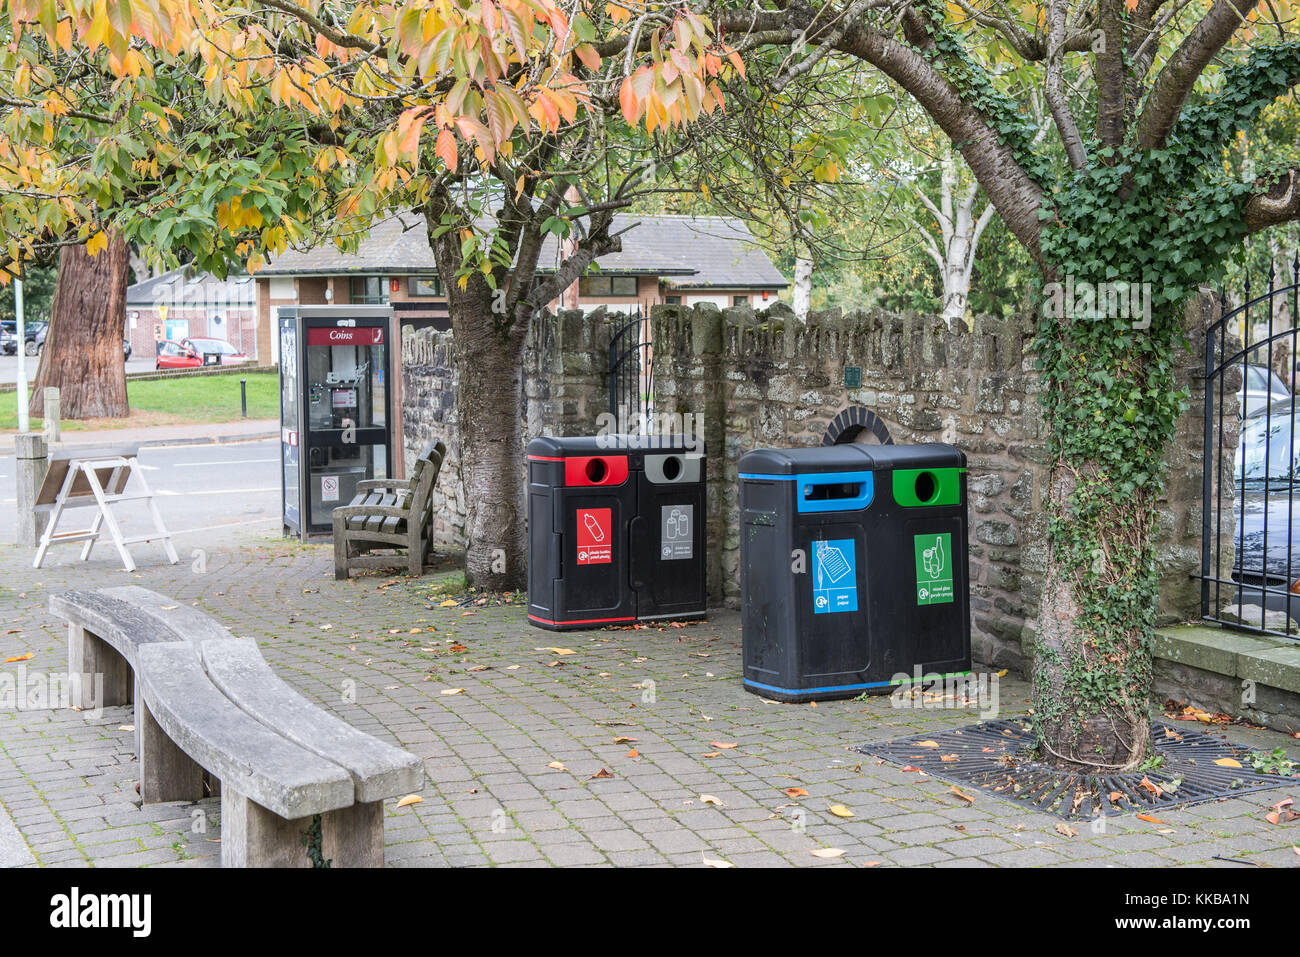 Recycling bins on a pavement in Builth Wells, Powys, Wales, UK. Stock Photo